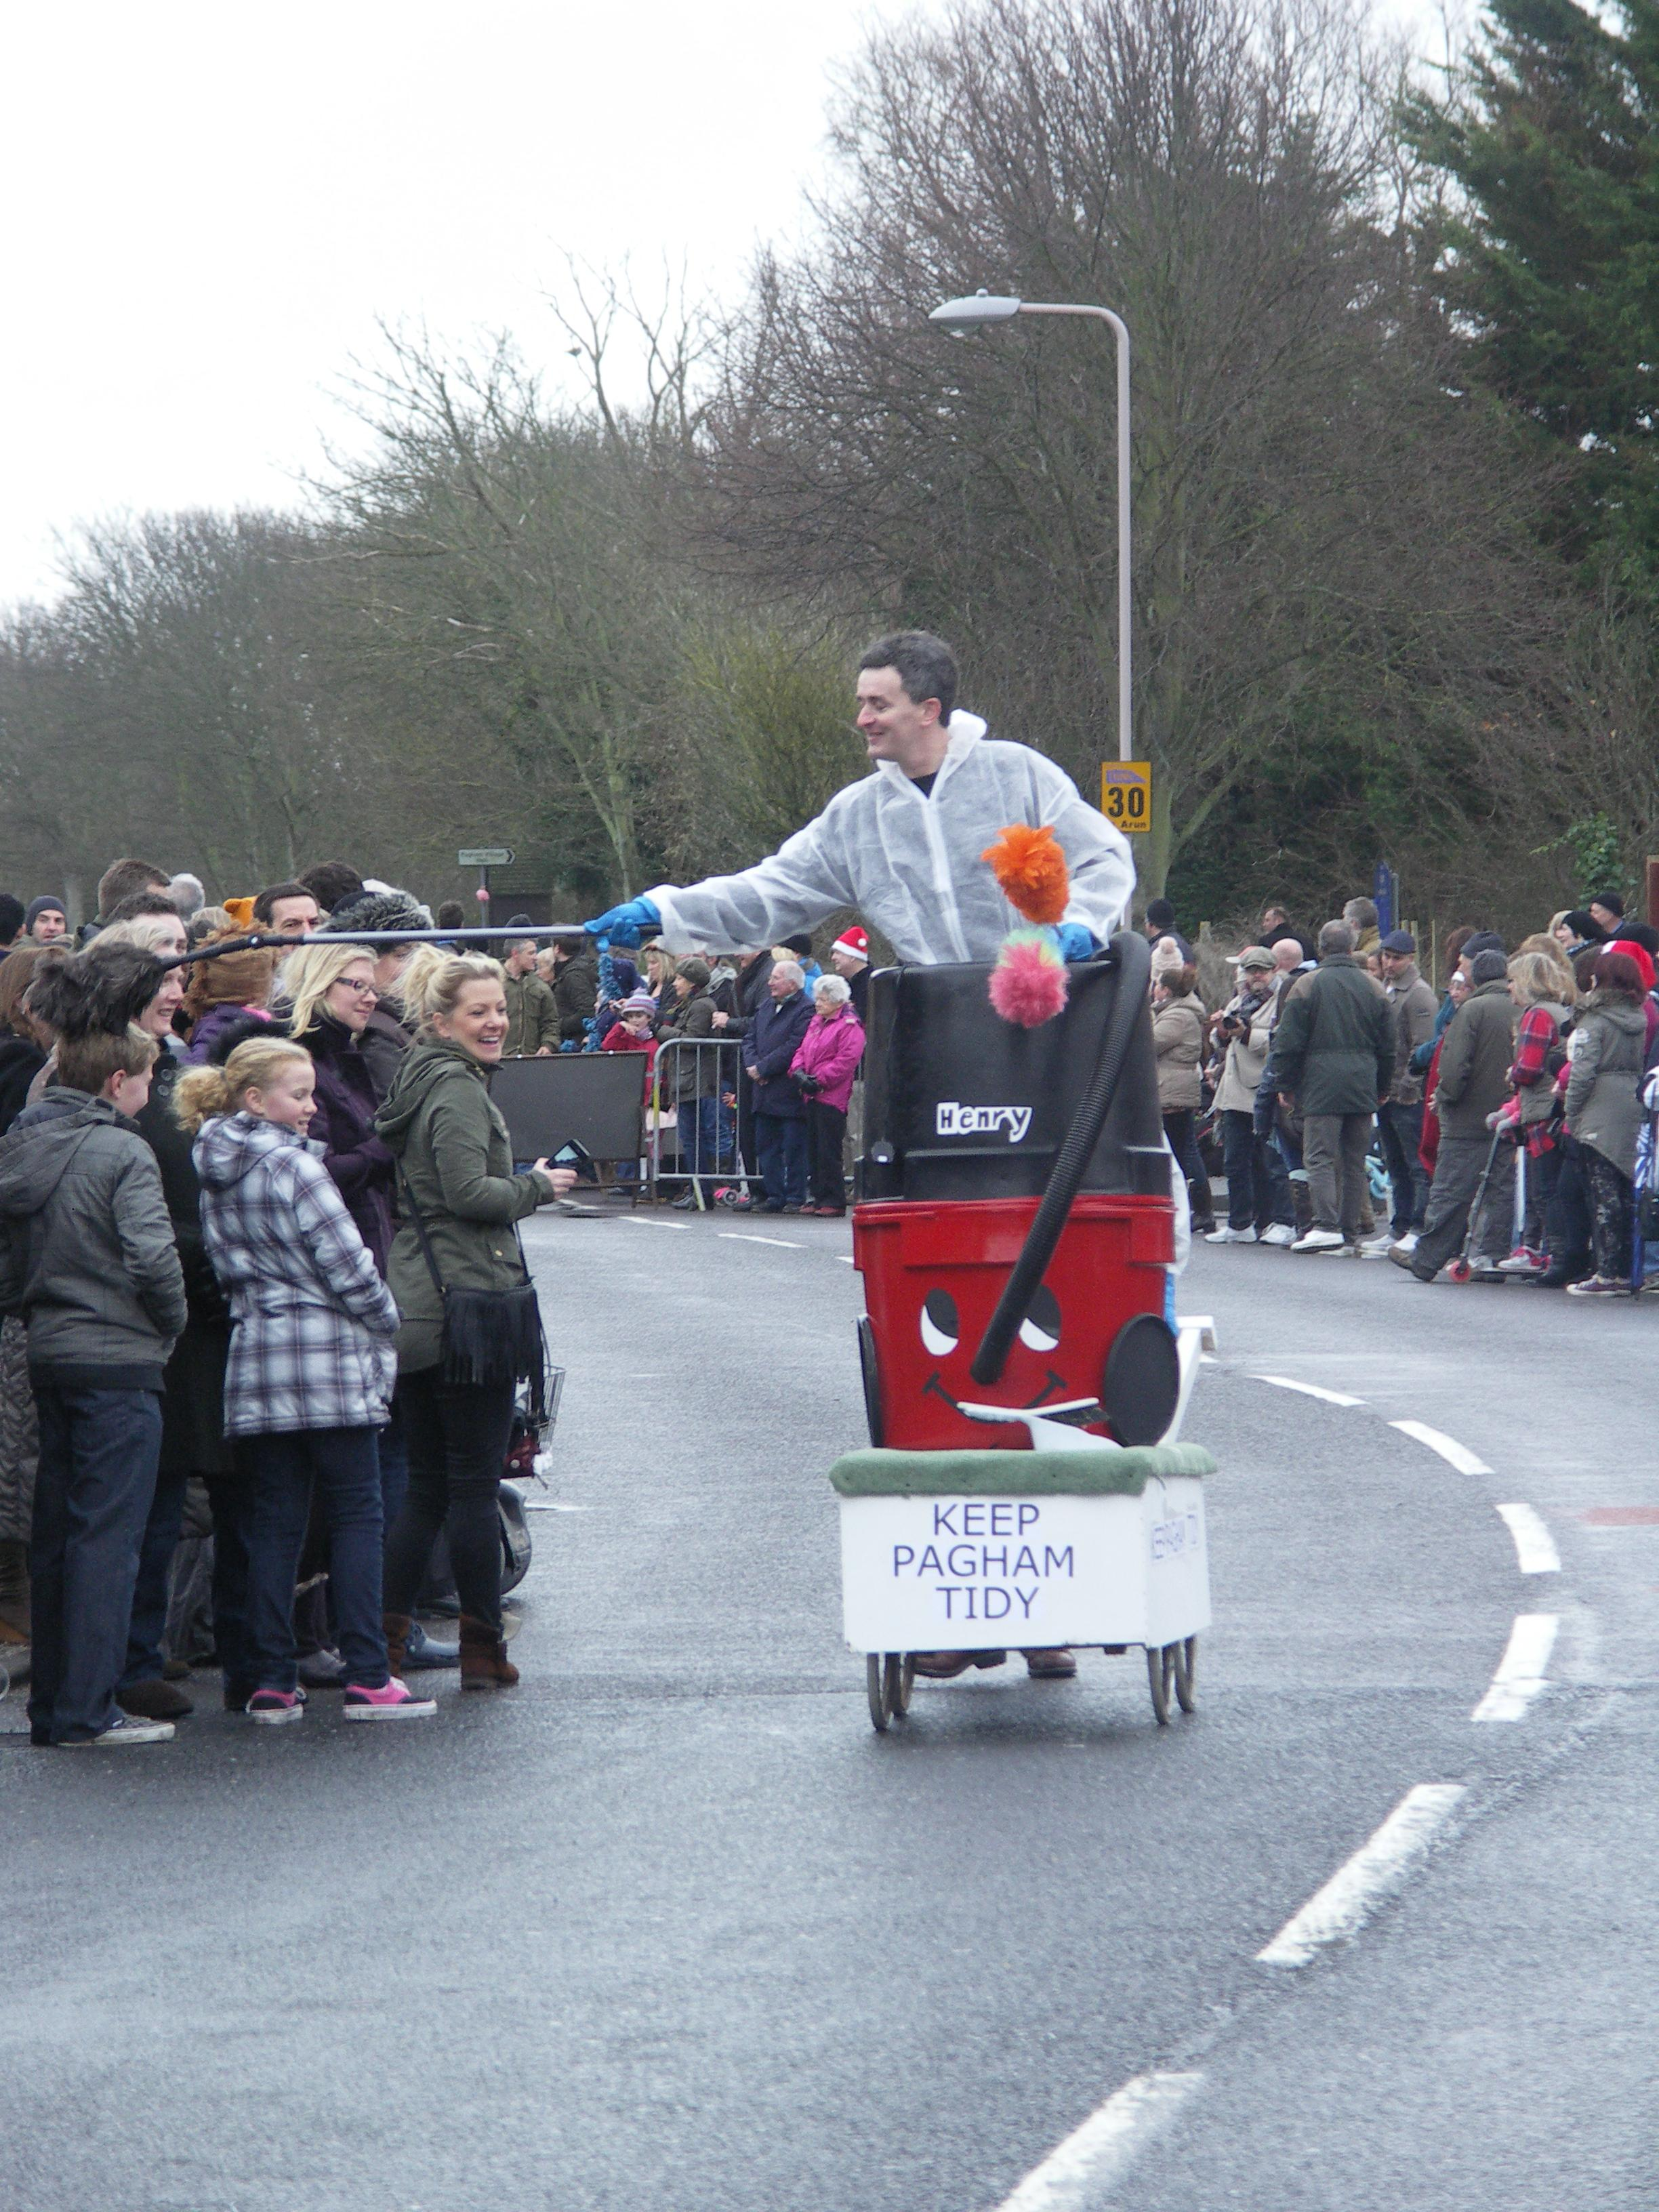 http://www.paghampramrace.com/wp-content/uploads/2018/04/PICT0088.jpg